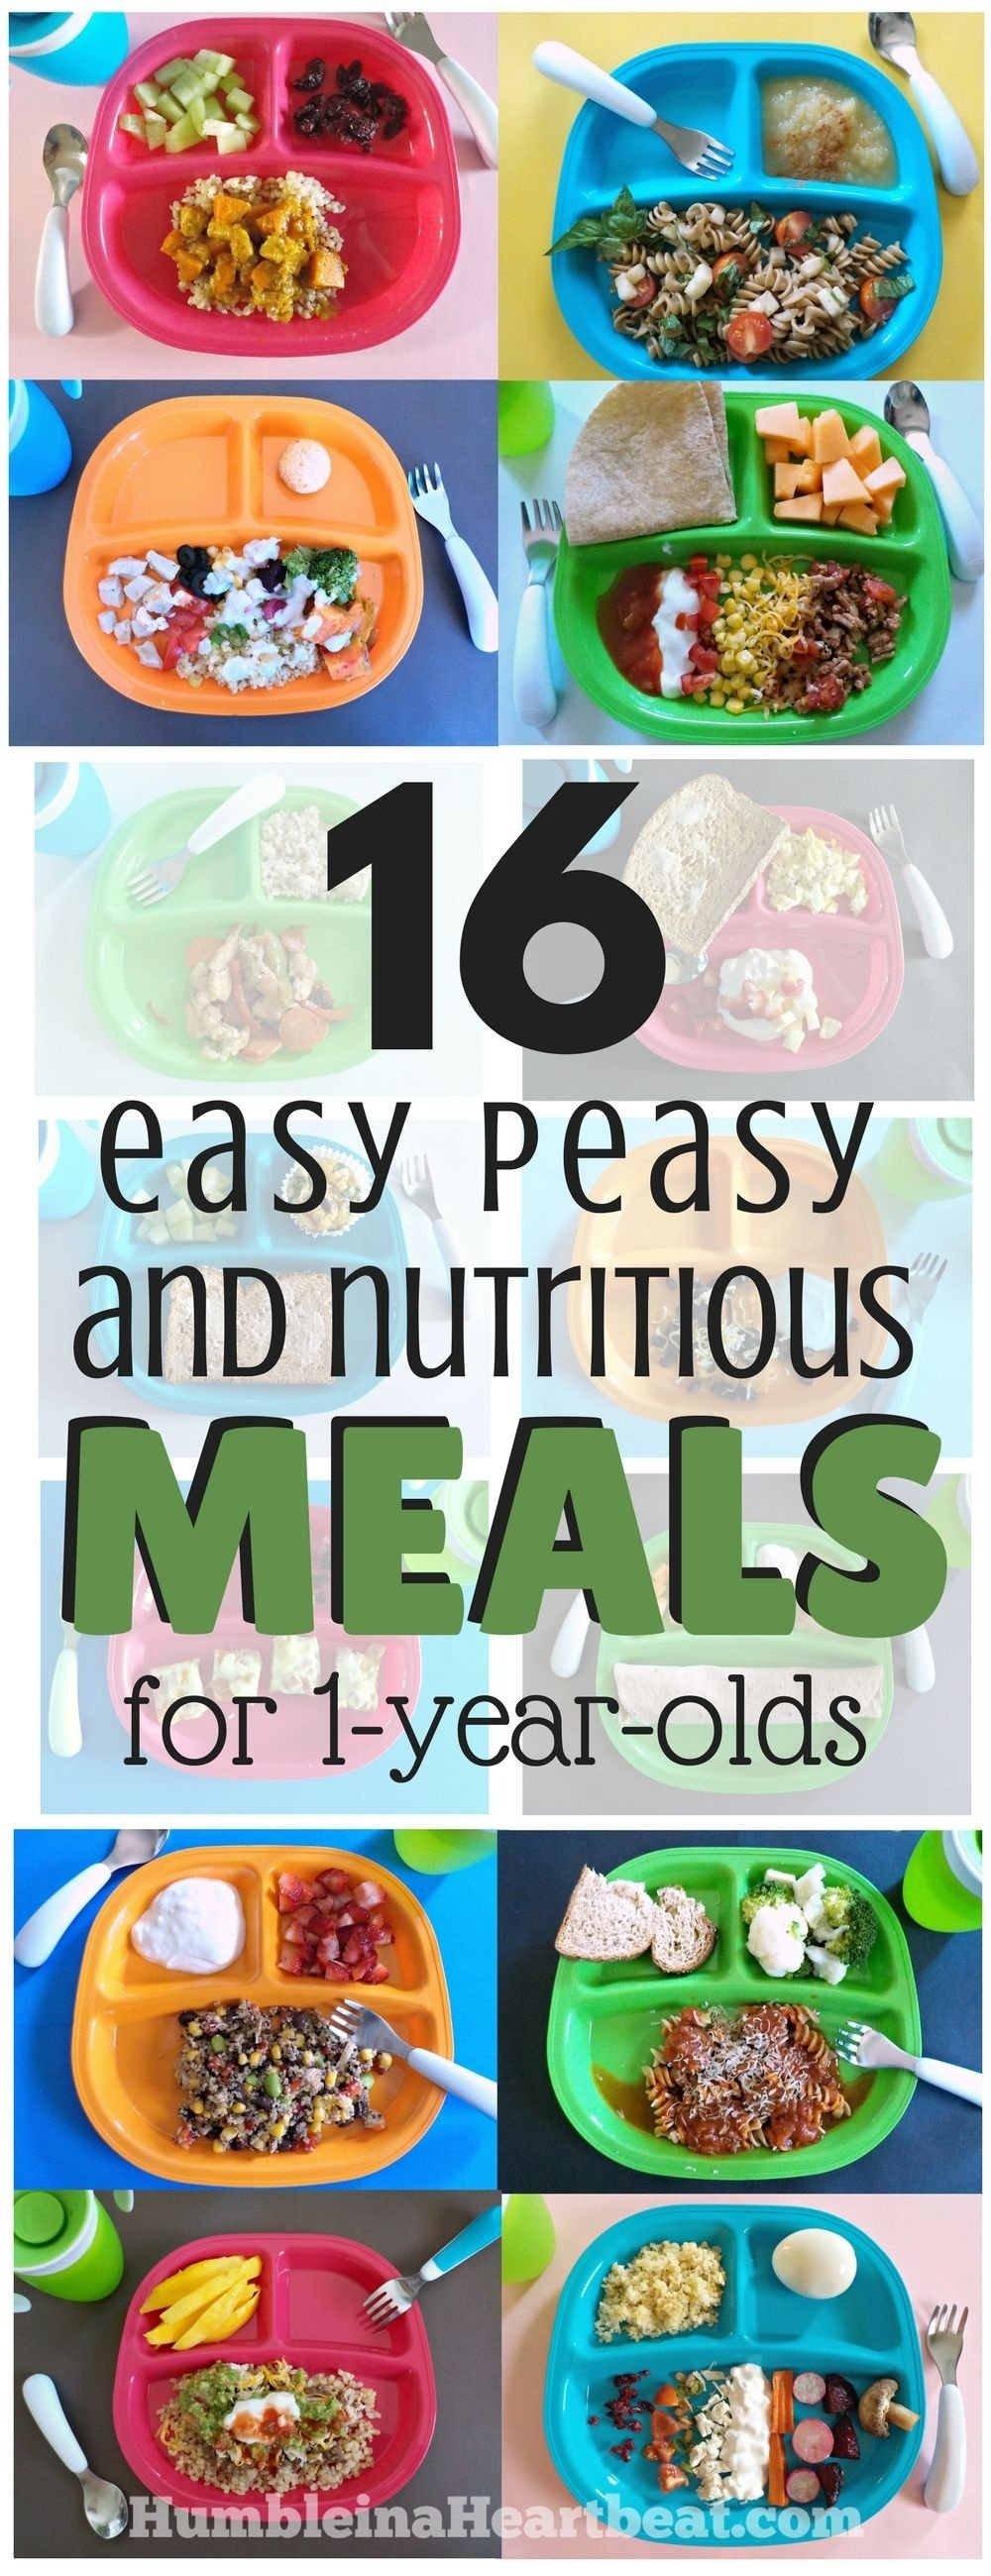 10 Elegant One Year Old Meal Ideas 16 simple meals for your 1 year old that will make you supermom 5 2020